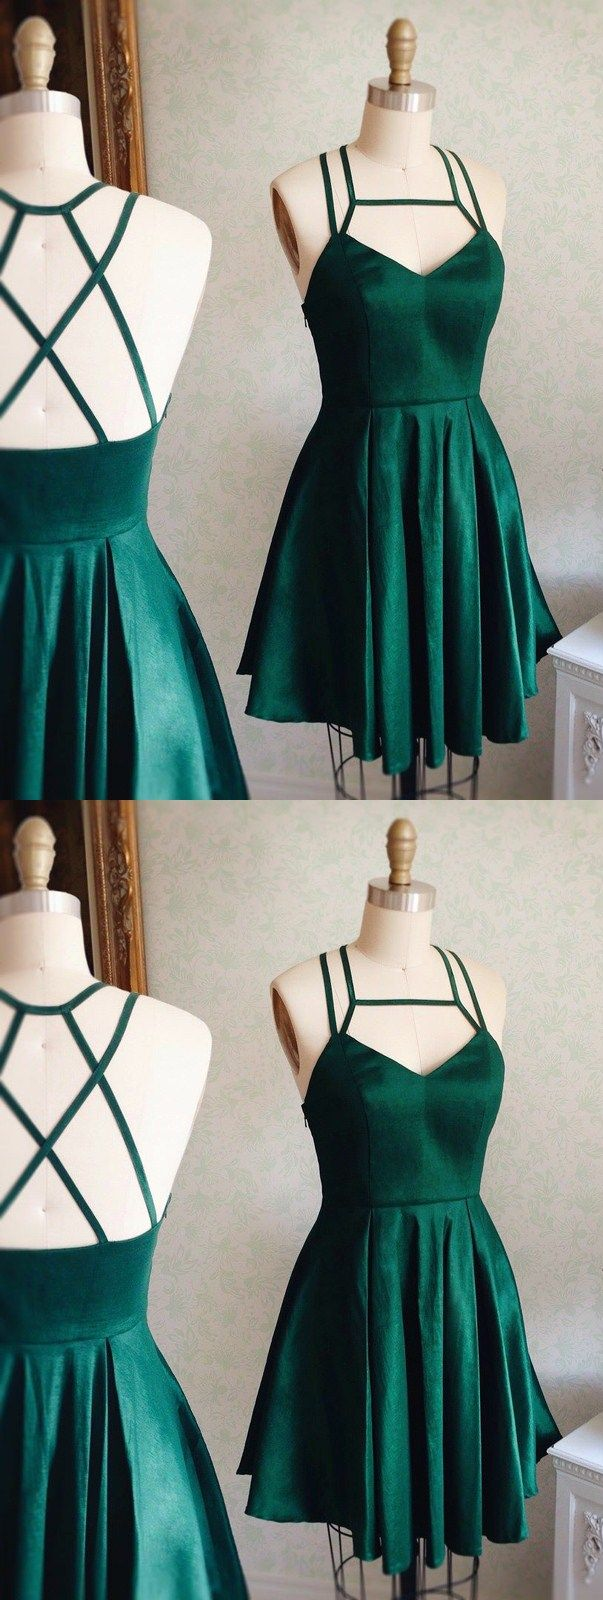 Simple short homecoming party gowns, chic a-line short prom dresses, fashion party gowns with criss cross back.